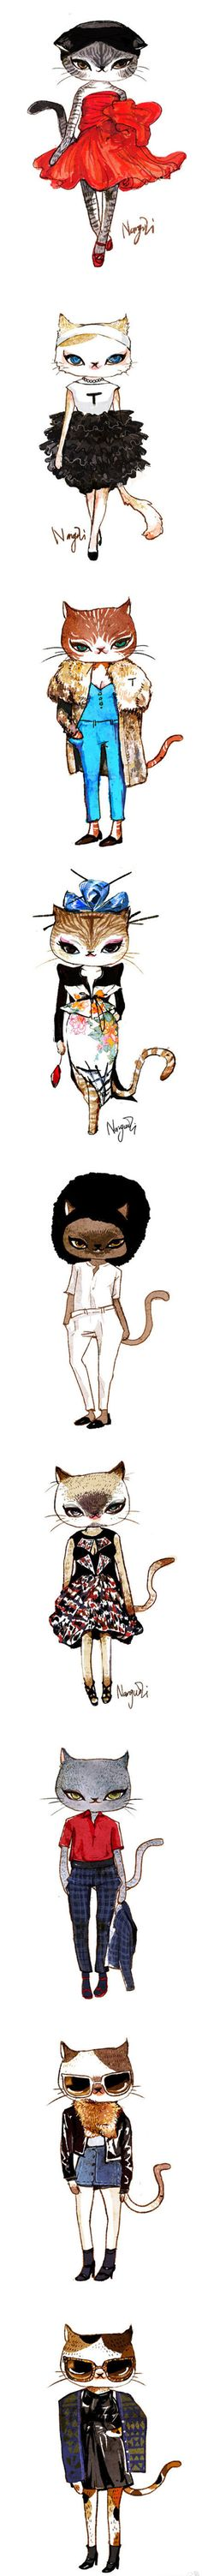 fashion cats - [previously pinned by Ashaley Lenora to my much larger board called Arts & Cats I]